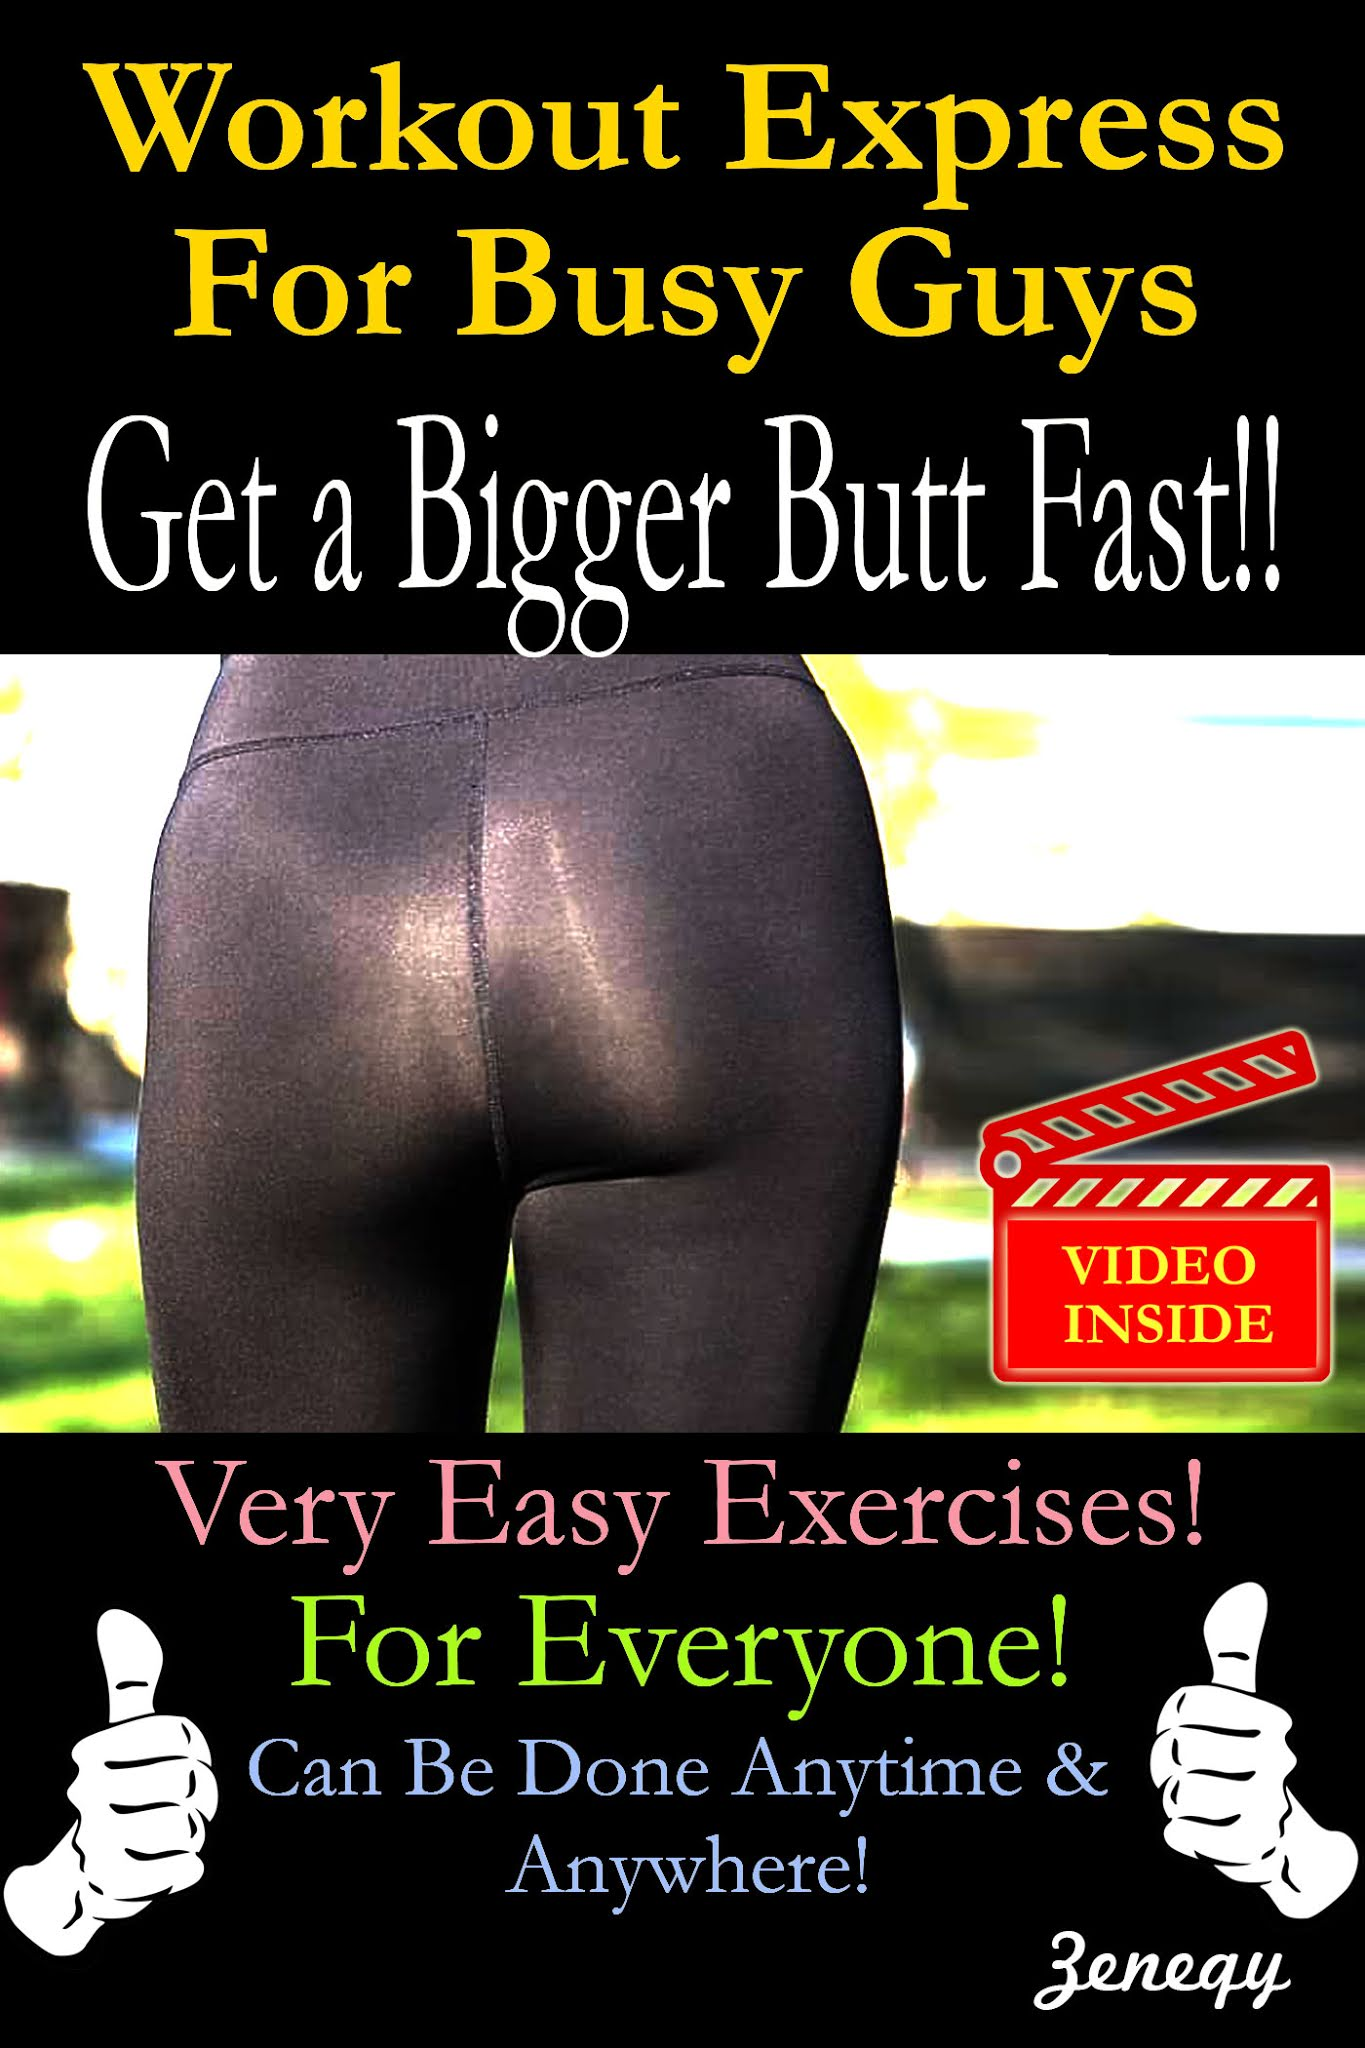 Workout Express For Busy Guys: Get A Bigger Butt Fast!!